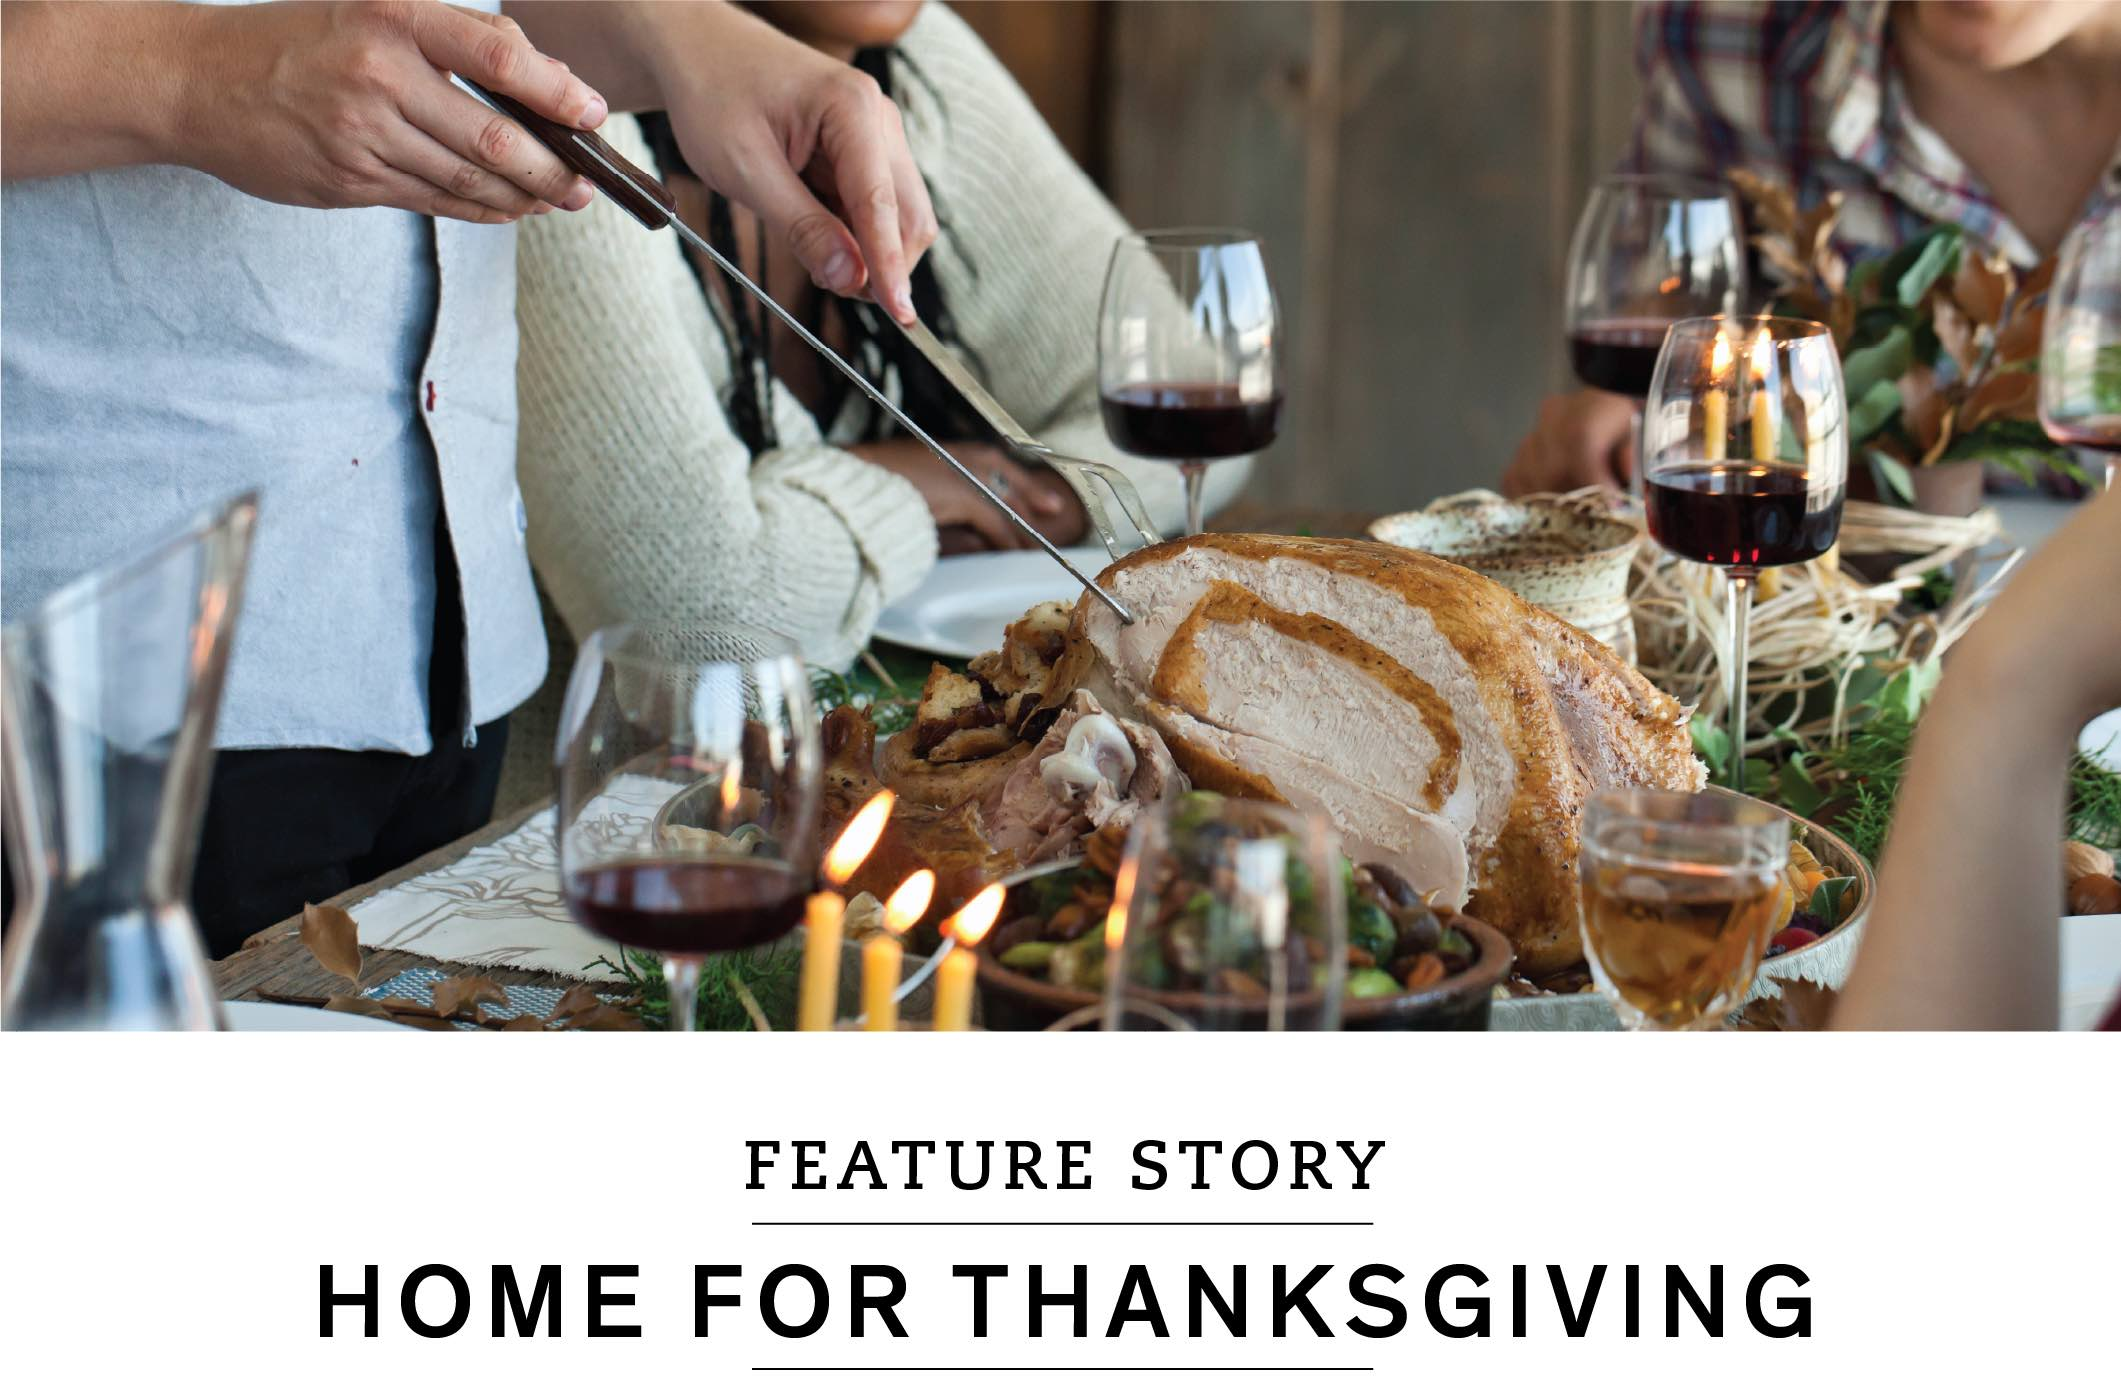 Feature Story: Home for Thanksgiving